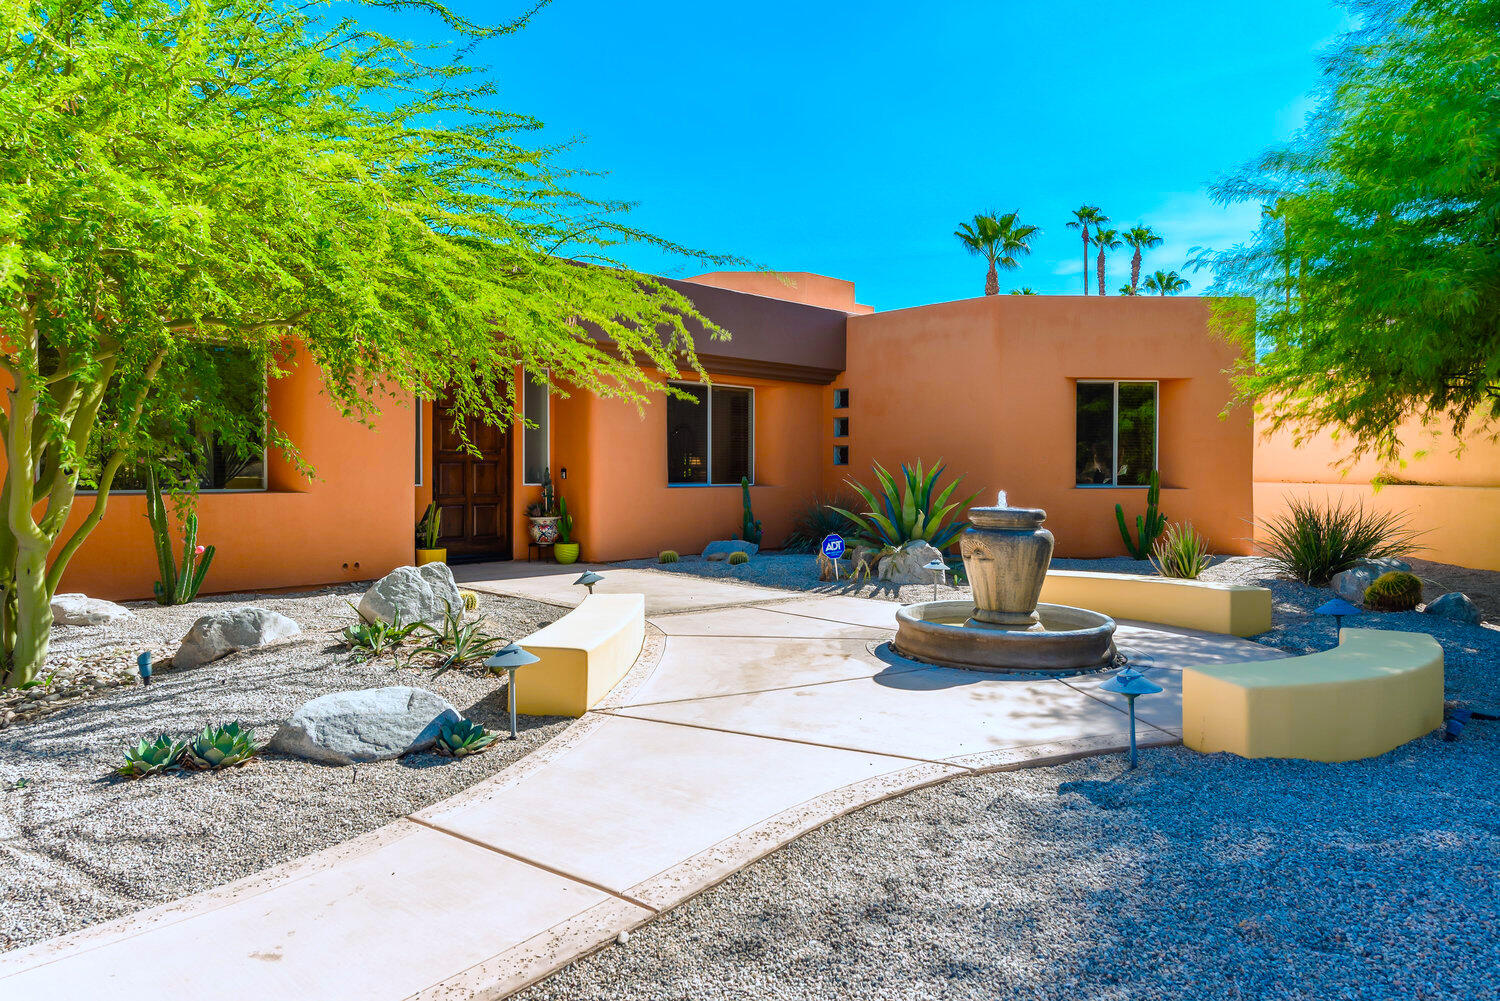 Crisp, clean, beautifully updated home with low $18/month HOA, on a non-gated street of desirable South Palm Desert.  Close to El Paseo, the Living Desert (Zoo), hiking trails, a highly sought-after charter school, and high-end communities.  Property features 12-foot ceilings, open floor plan, designated dining area, great room and living room separated by a dual sided fireplace.  Large Master suite with expansive views of the yard and mountains, large walk-in closet, walk-in shower and dual sinks with plenty of storage.  The yard is an entertainment heaven.  Well appointed with fire pit, multiple fans, built-in sound system, two electric awnings expanding the entire south-east side of the property, and large salt-water pool with elevated spa.  Entire property is desert landscape for low maintenance. Mountain views from almost every room in the house. Come see this property in person at one of our many open houses. This desirable property will go quickly, don't miss out!